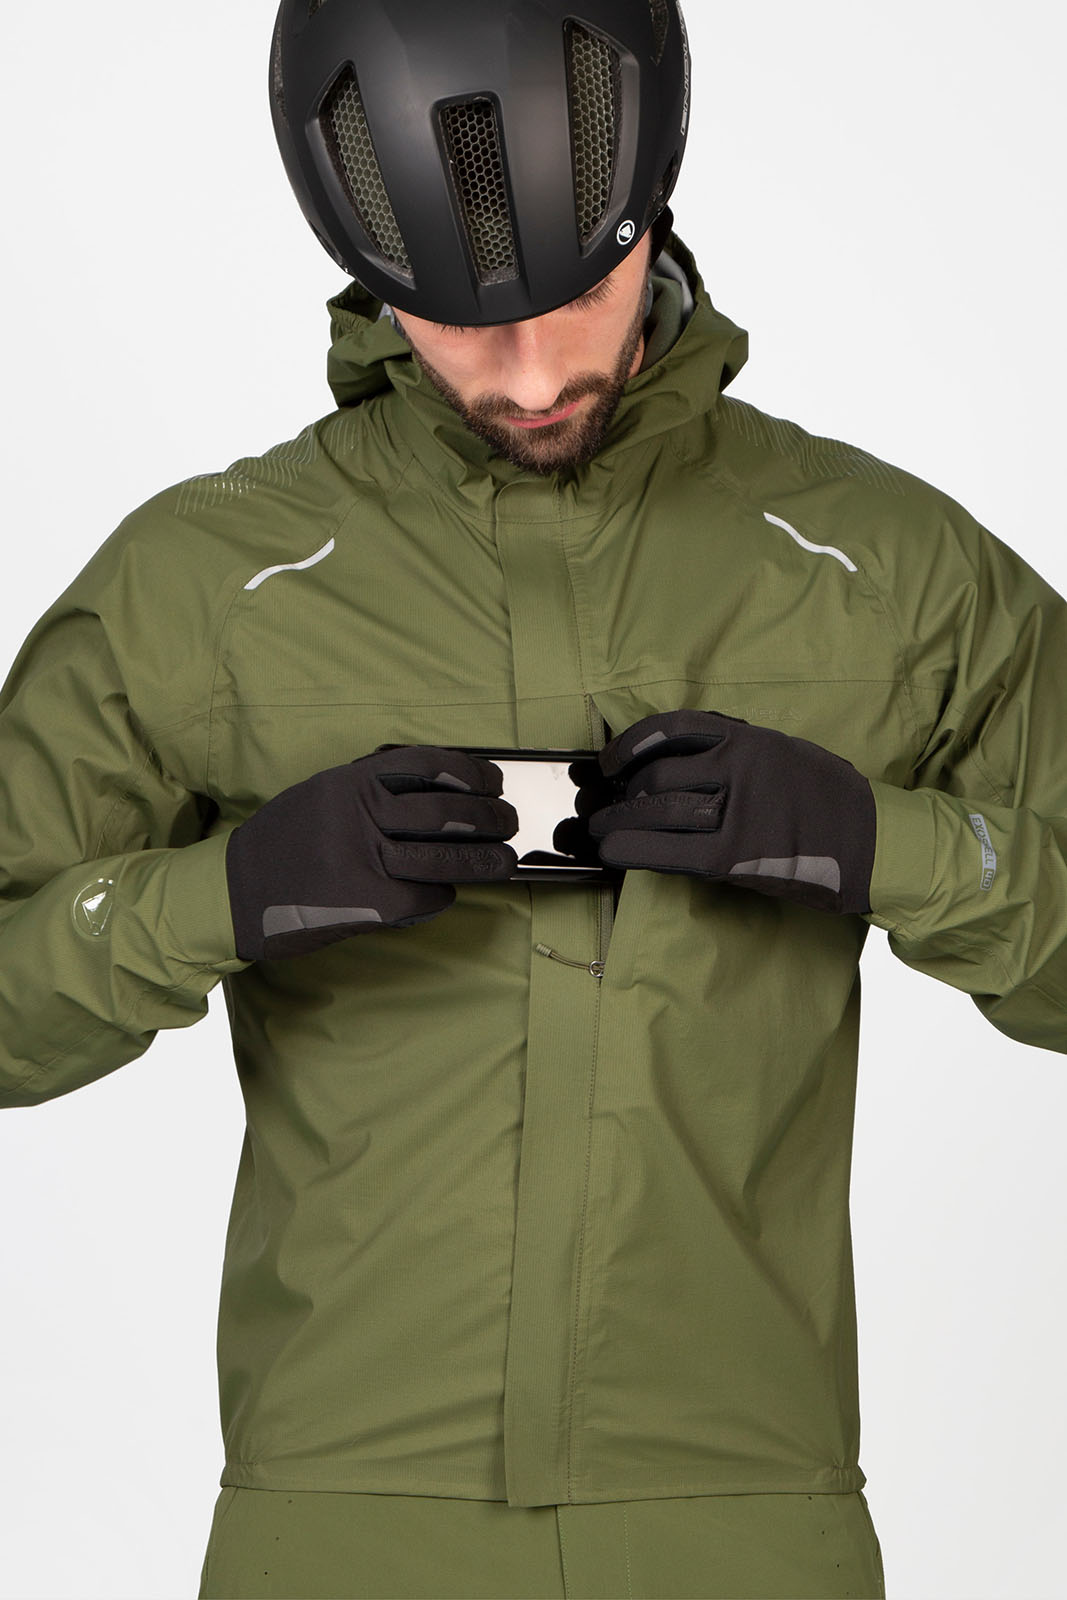 a man wearing an enduro gv500 jacket puts a phone in his pocket